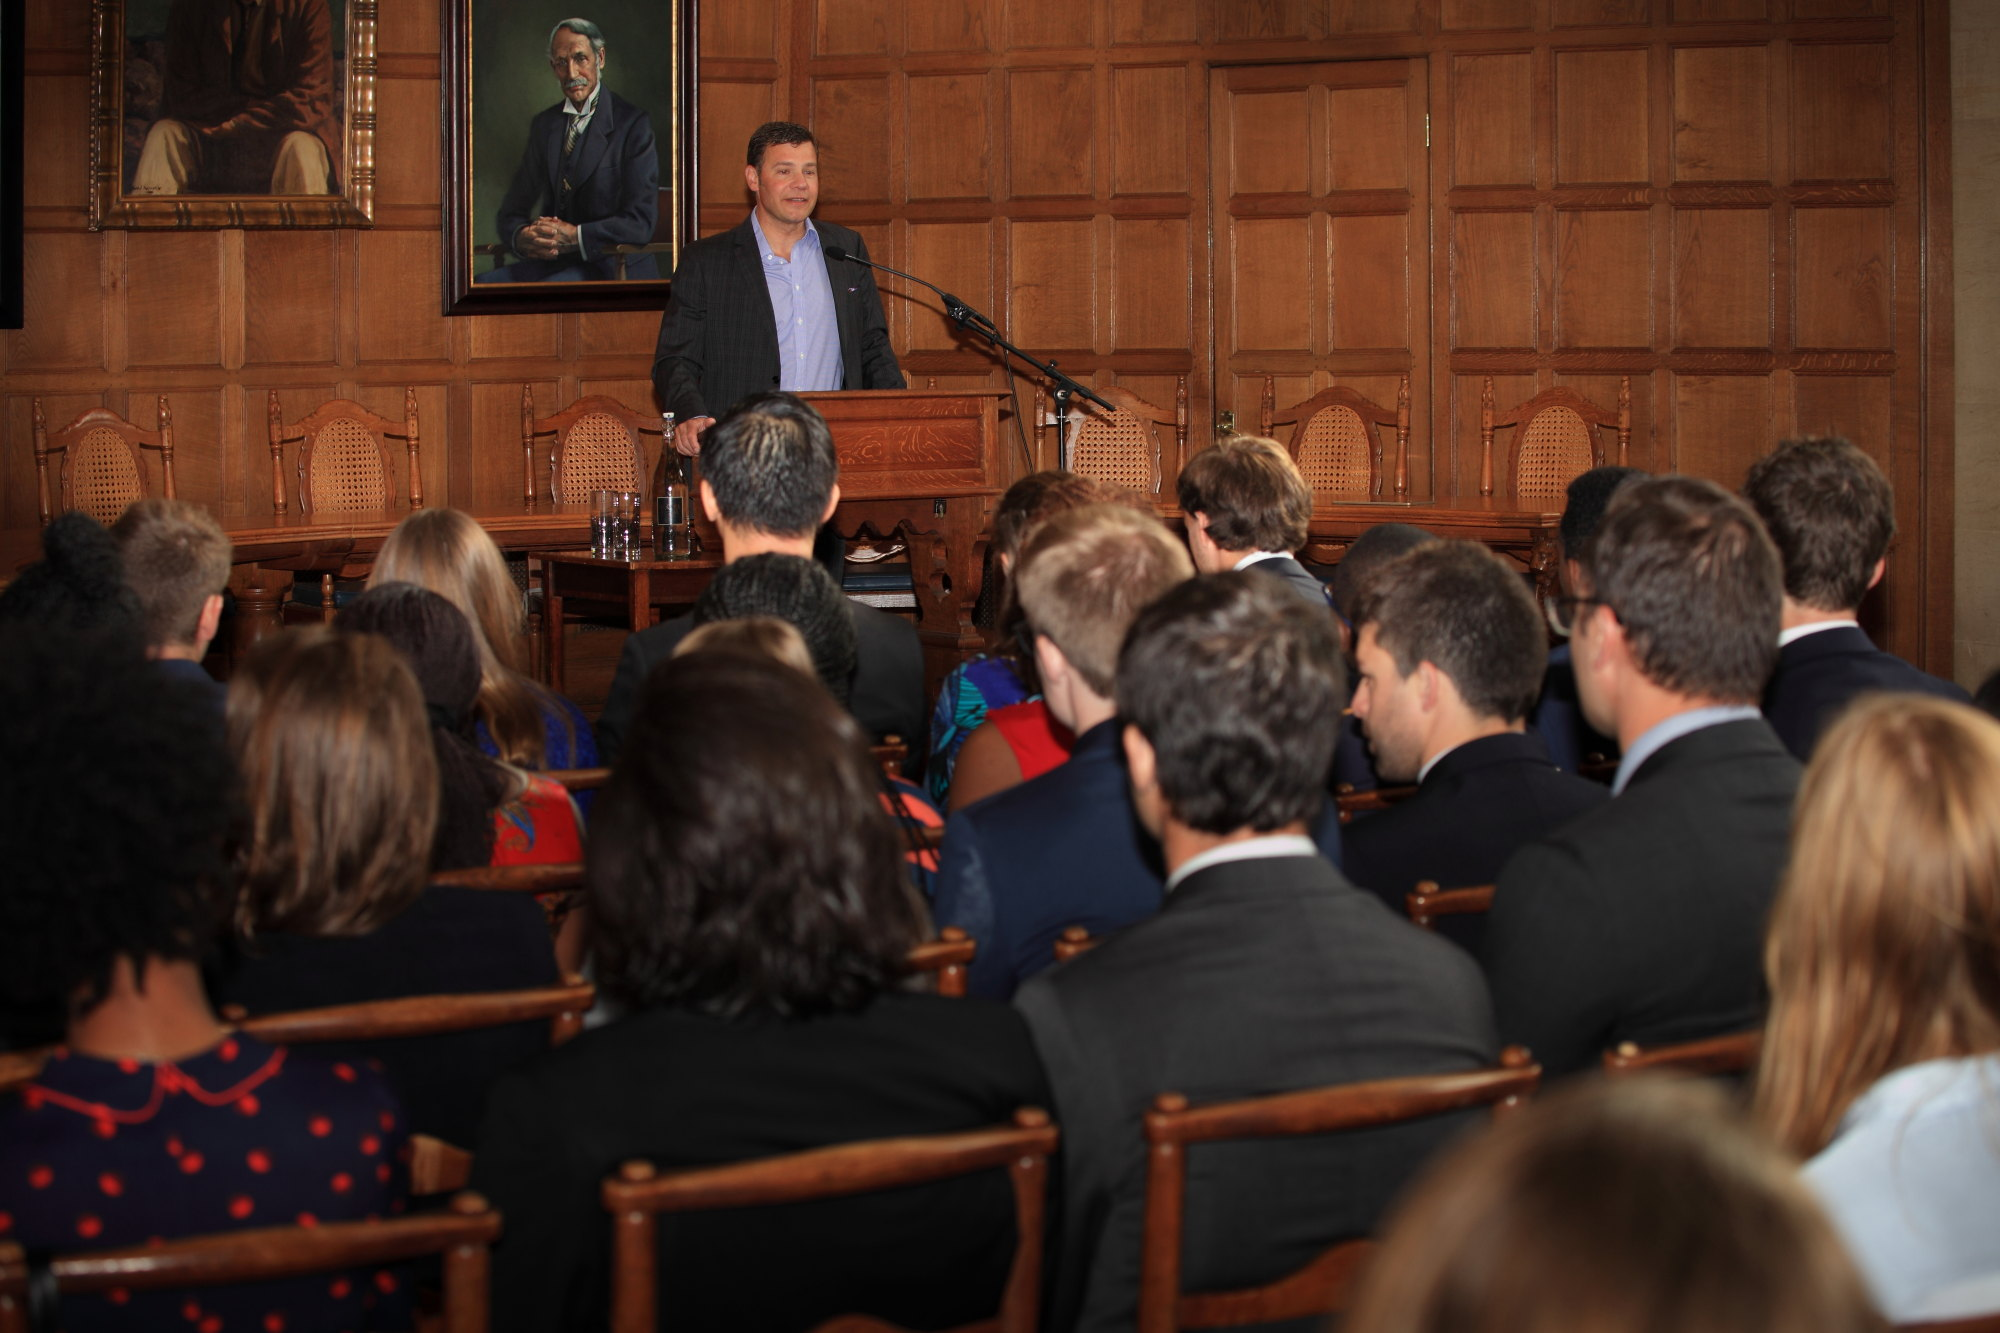 ​Welcoming the Class of 2015 to Oxford